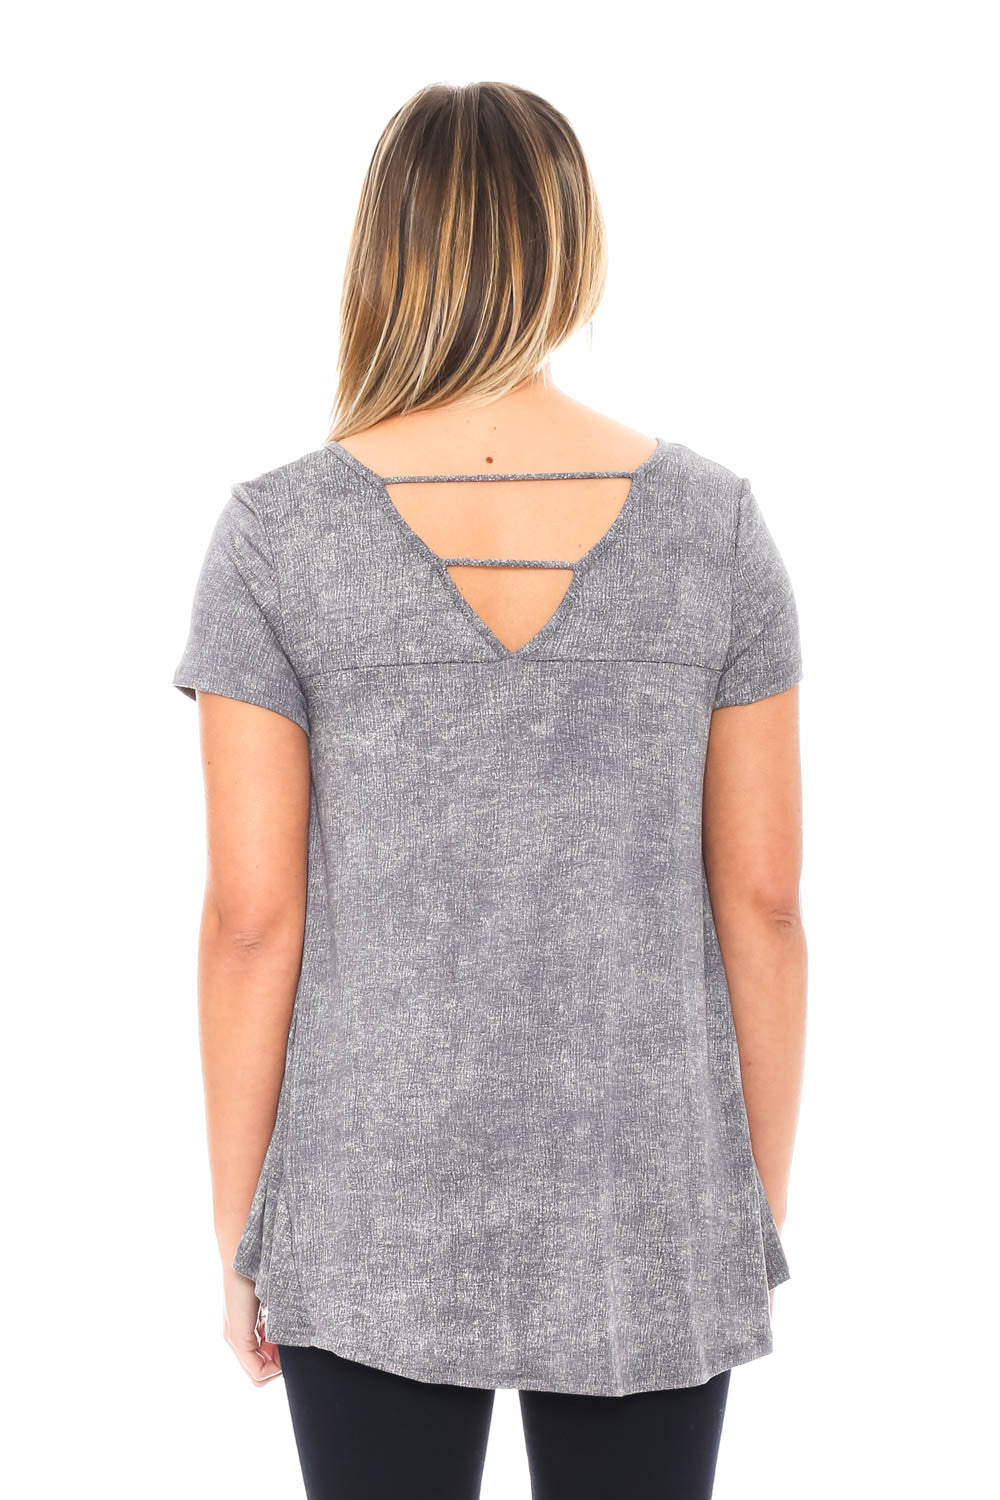 Shirt - High Low with V Back by Paper Crane